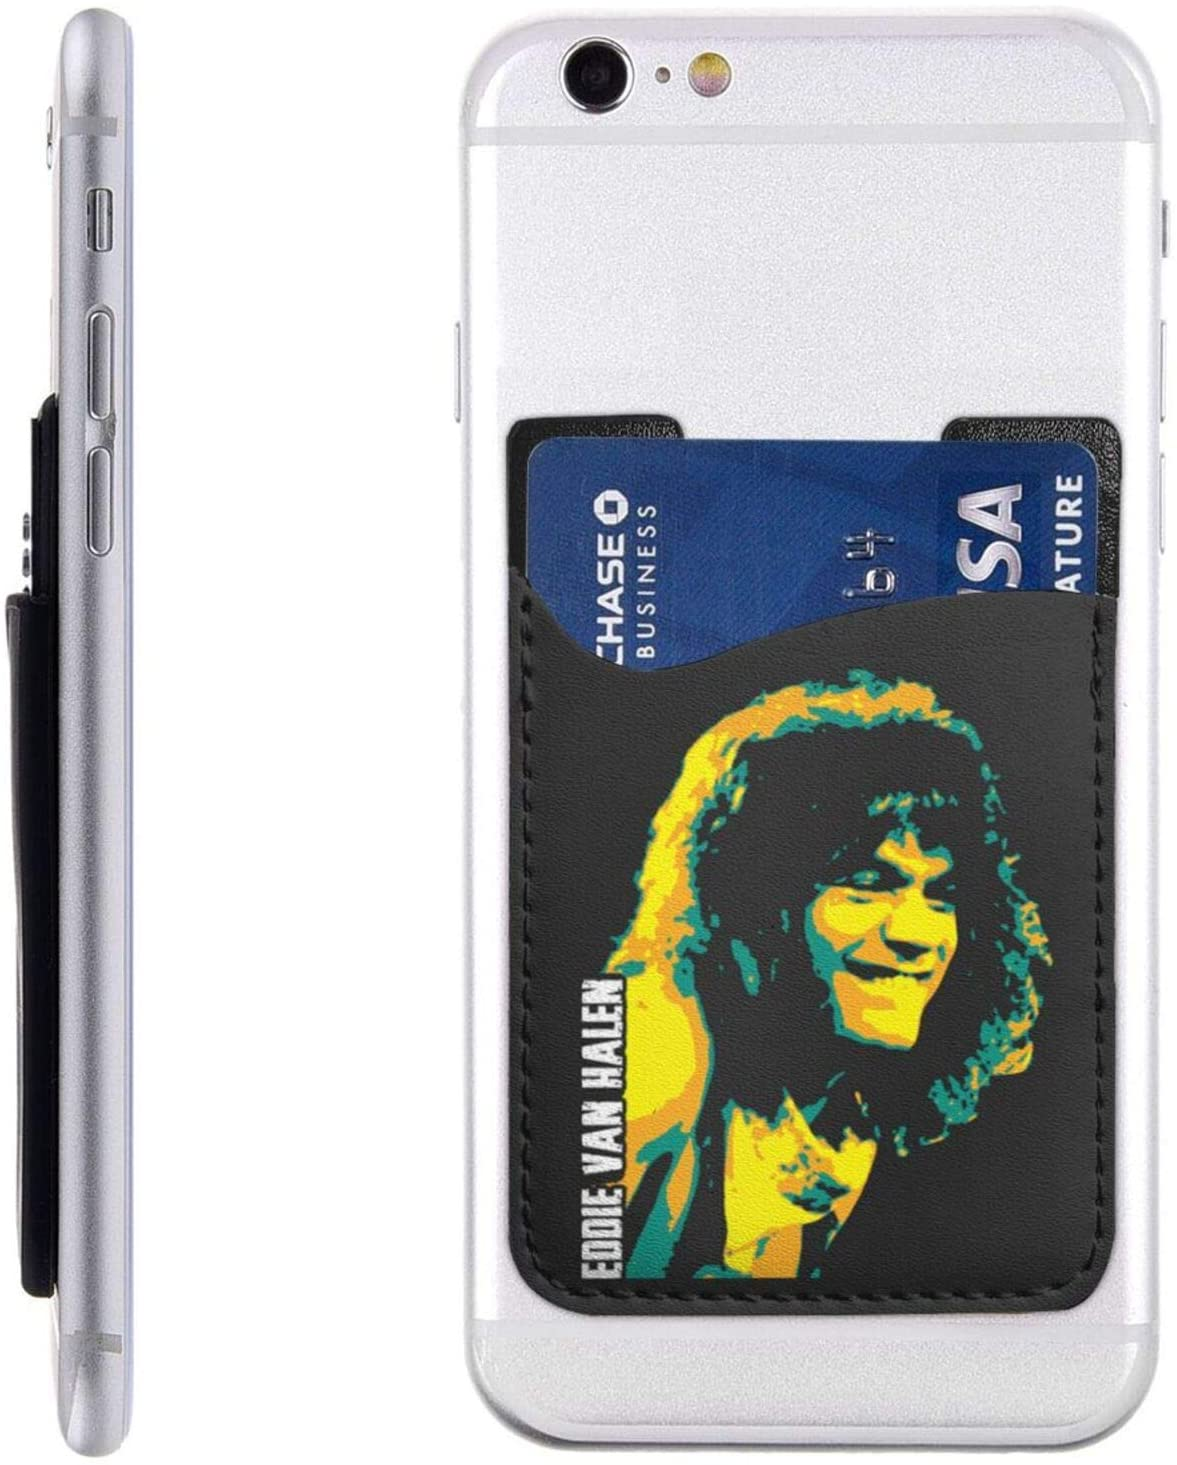 Eddie Van Halen Phone Card Holder, Stick-On Id Credit Card Wallet Phone Case Pouch Sleeve Pocket for iPhone, Android and All Smartphones